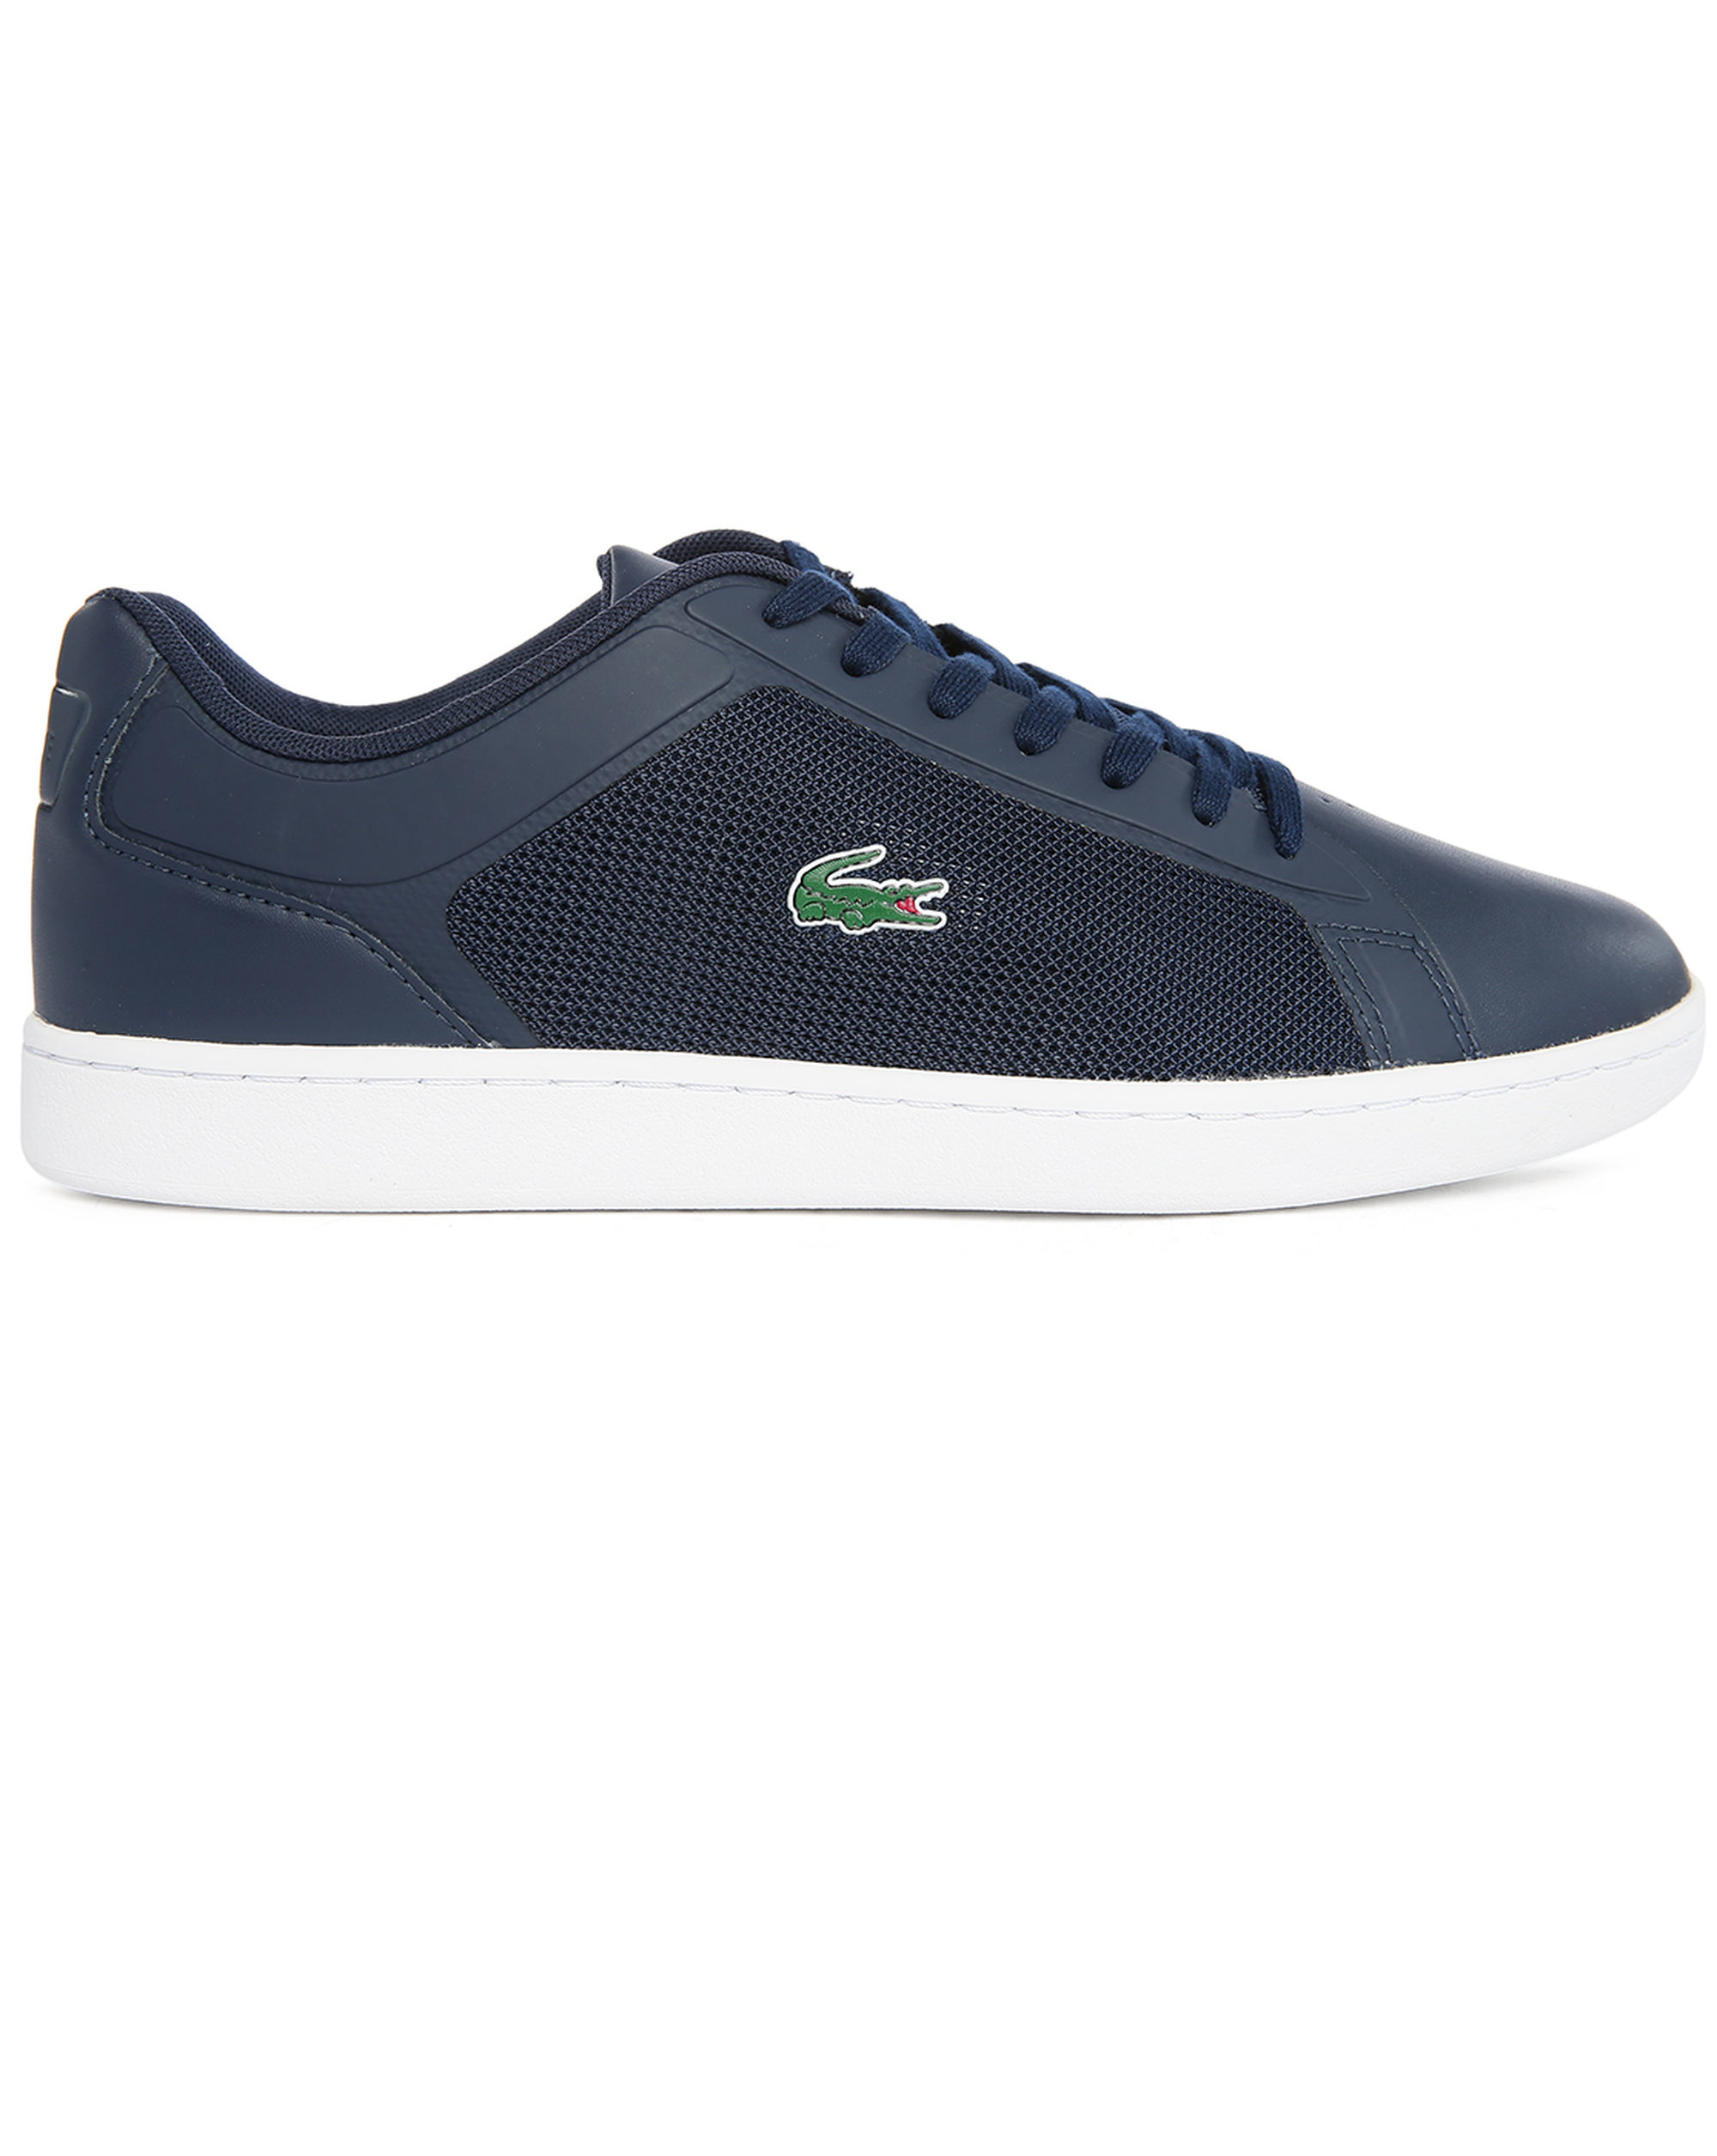 lacoste navy endliner lowtop sneakers in blue for men lyst